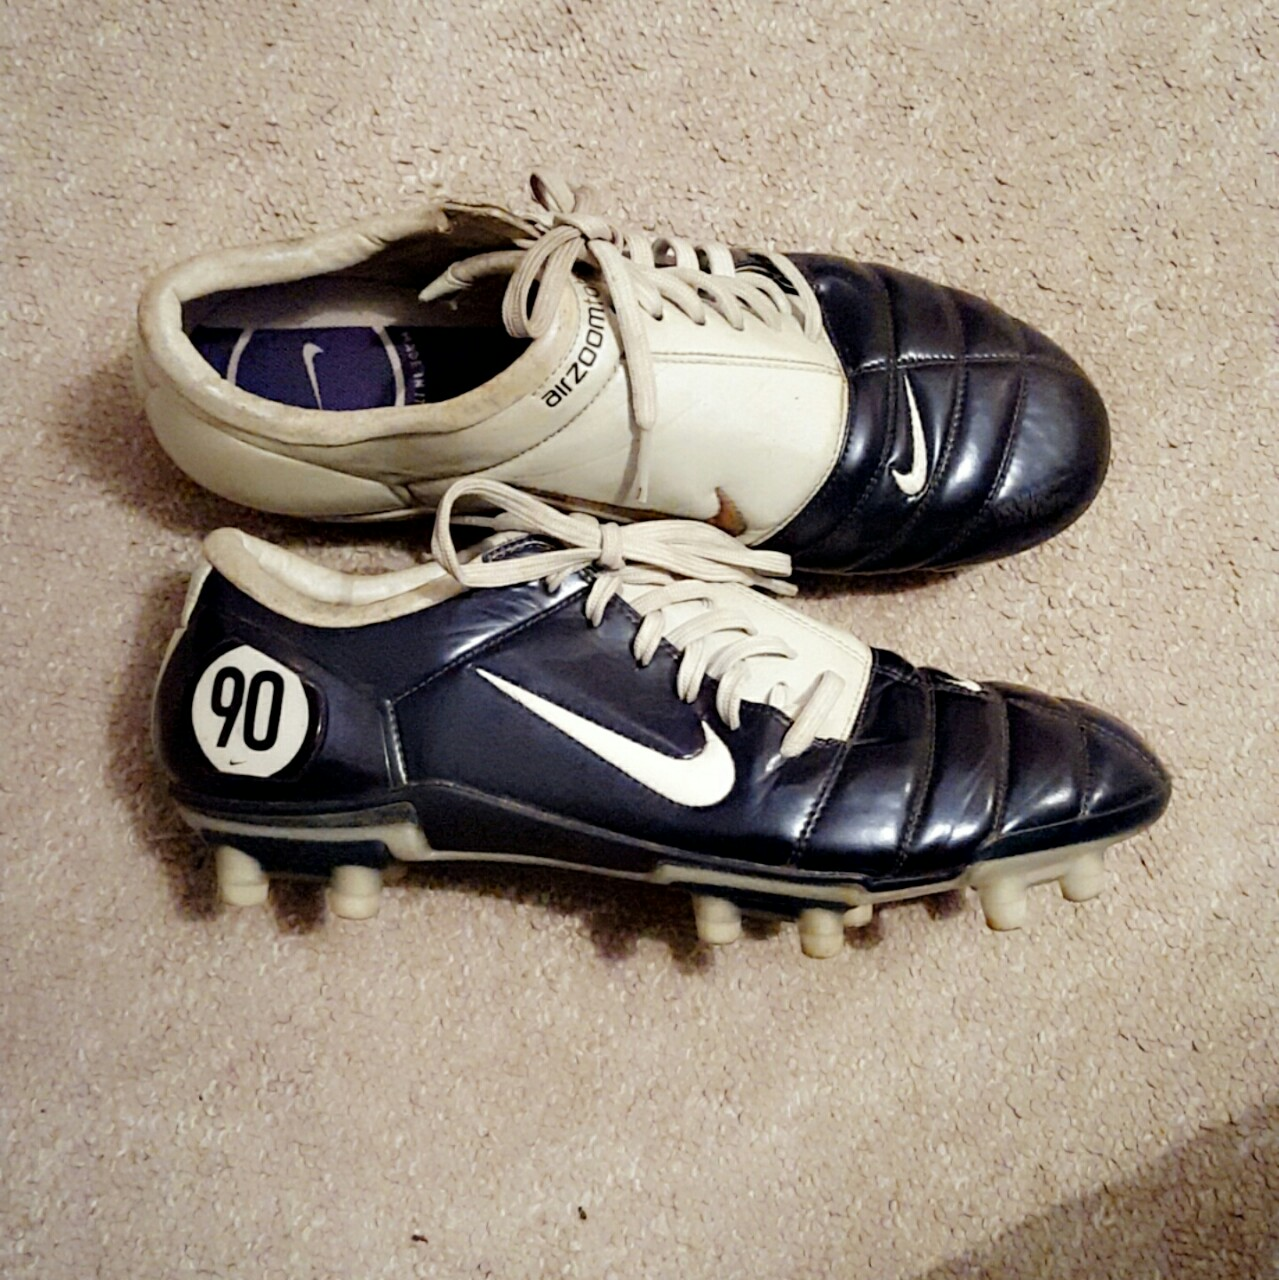 new concept 18cdc 92900 NIKE AIR ZOOM TOTAL 90 III FOOTBALL BOOTS. SIZE 9 ...